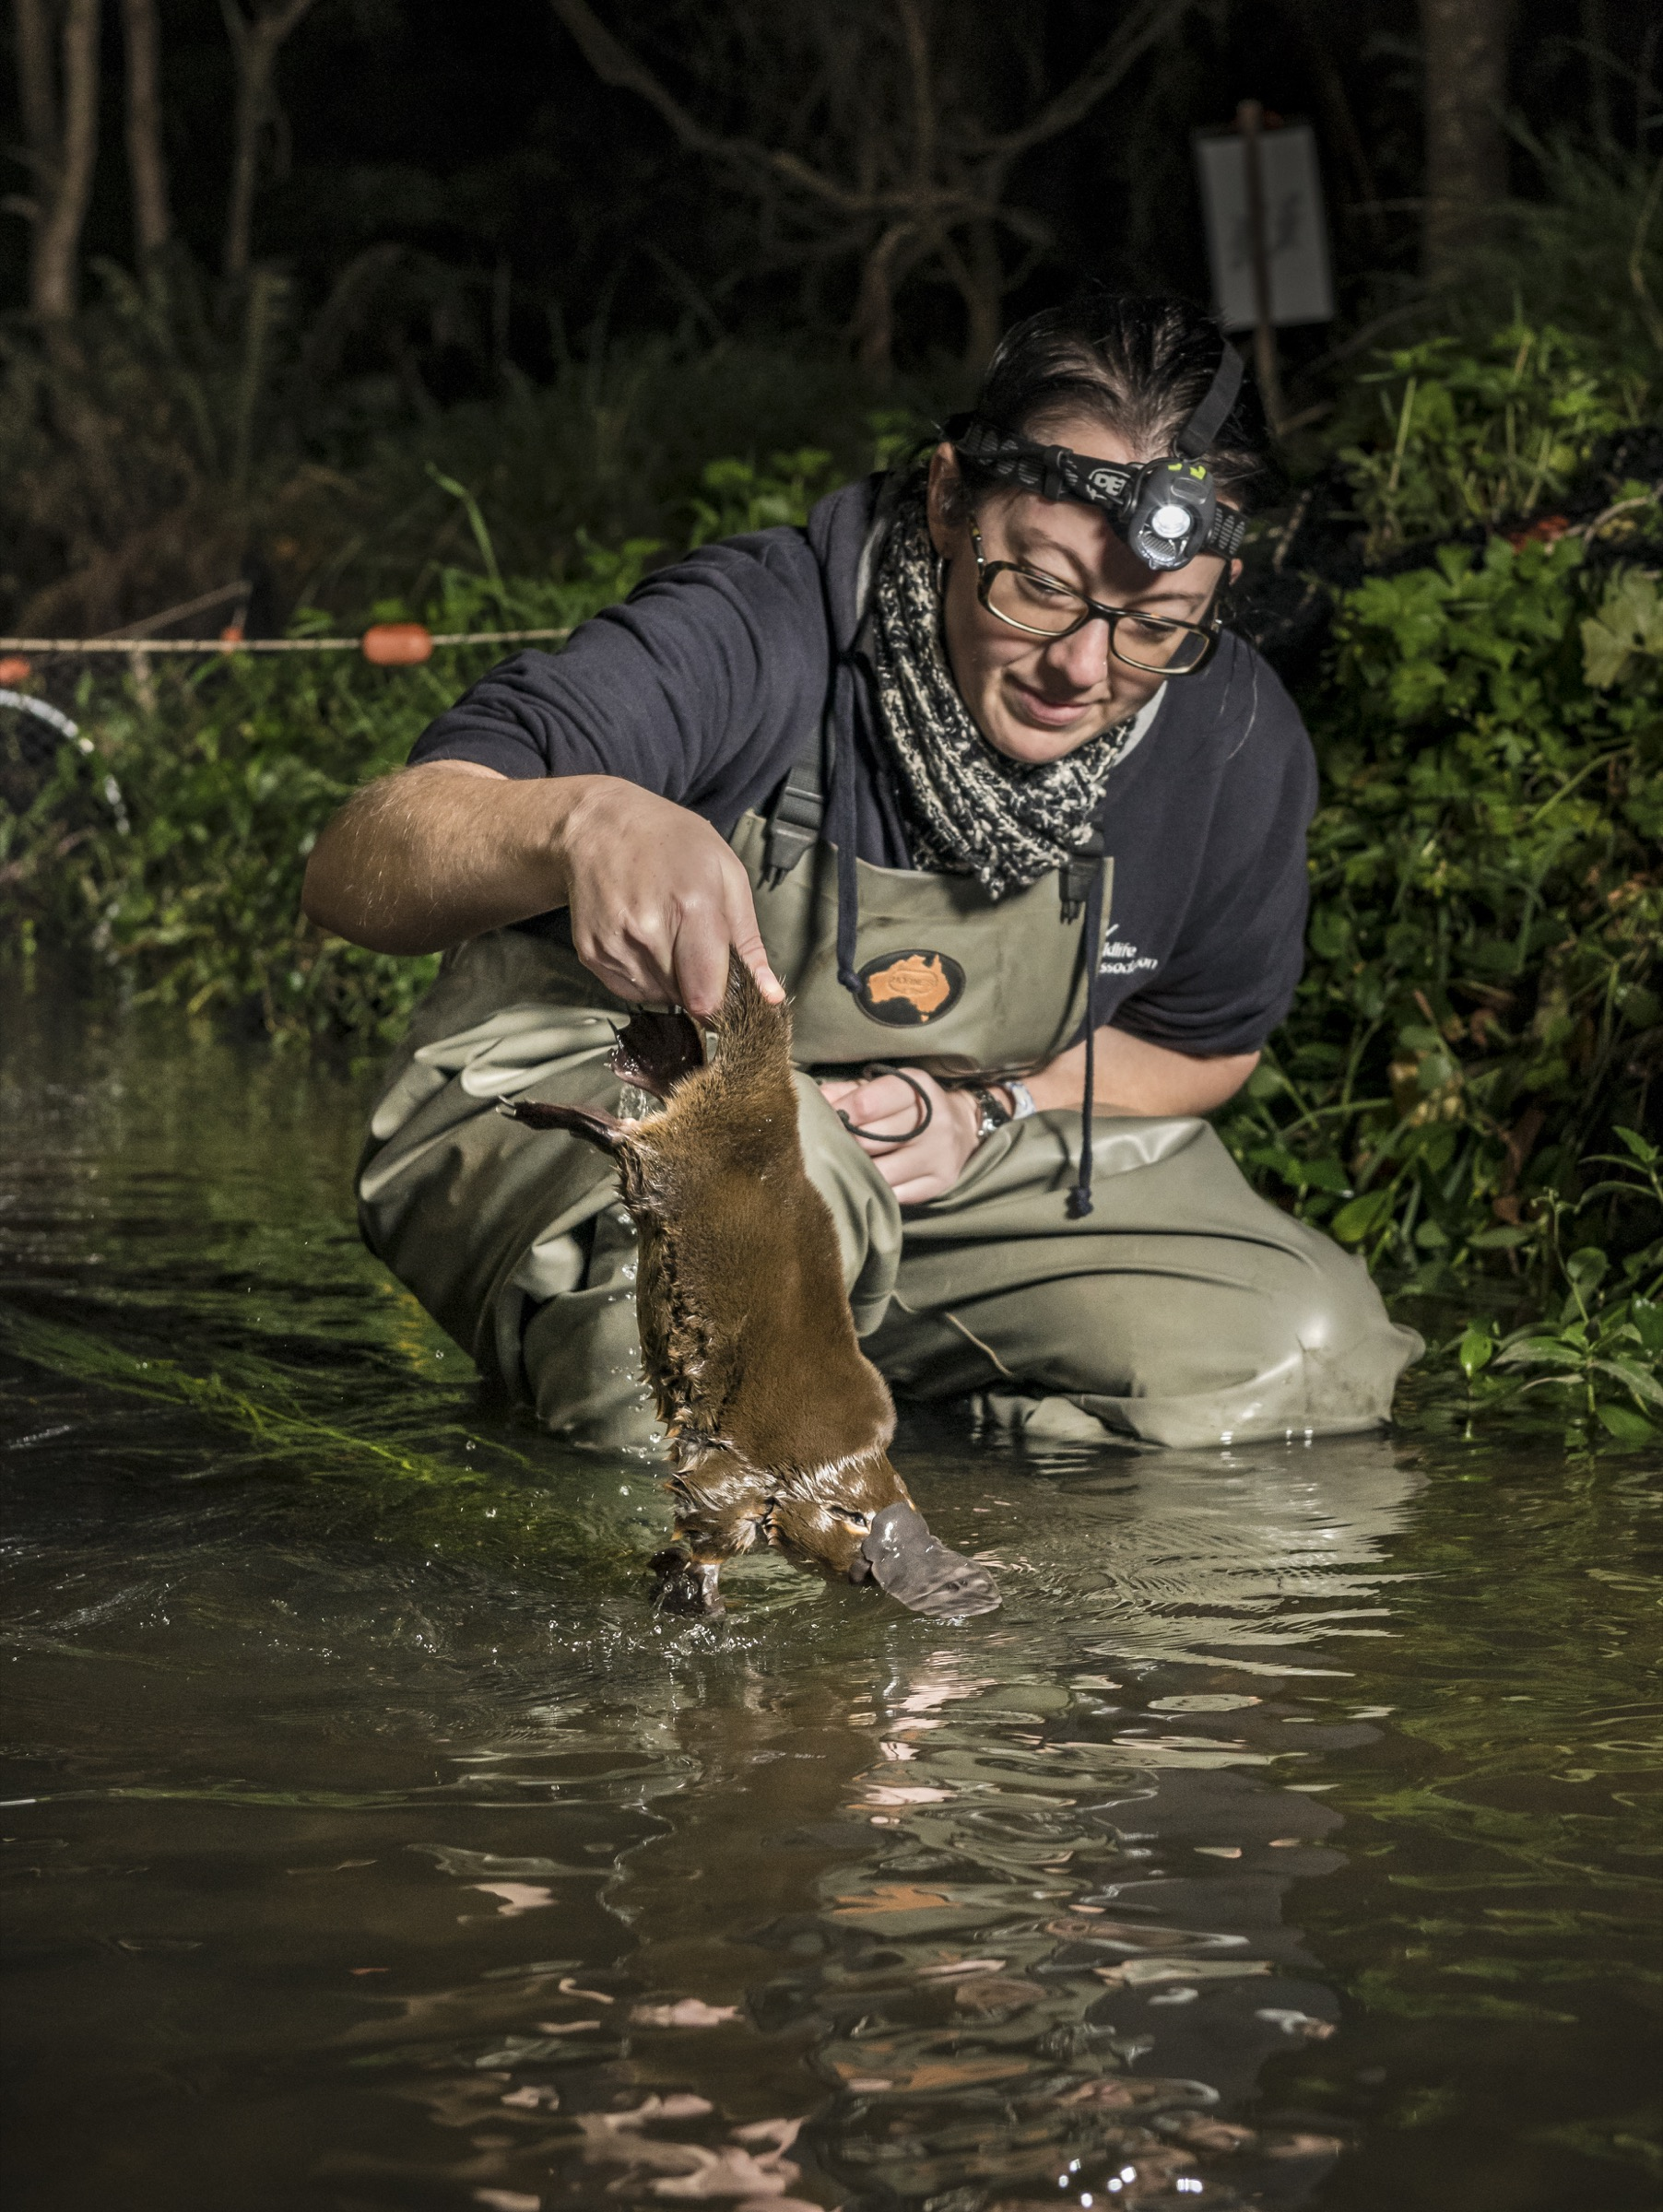 A researcher releases a captured platypus back into Woori Yallock Creek, in Victoria, Australia.